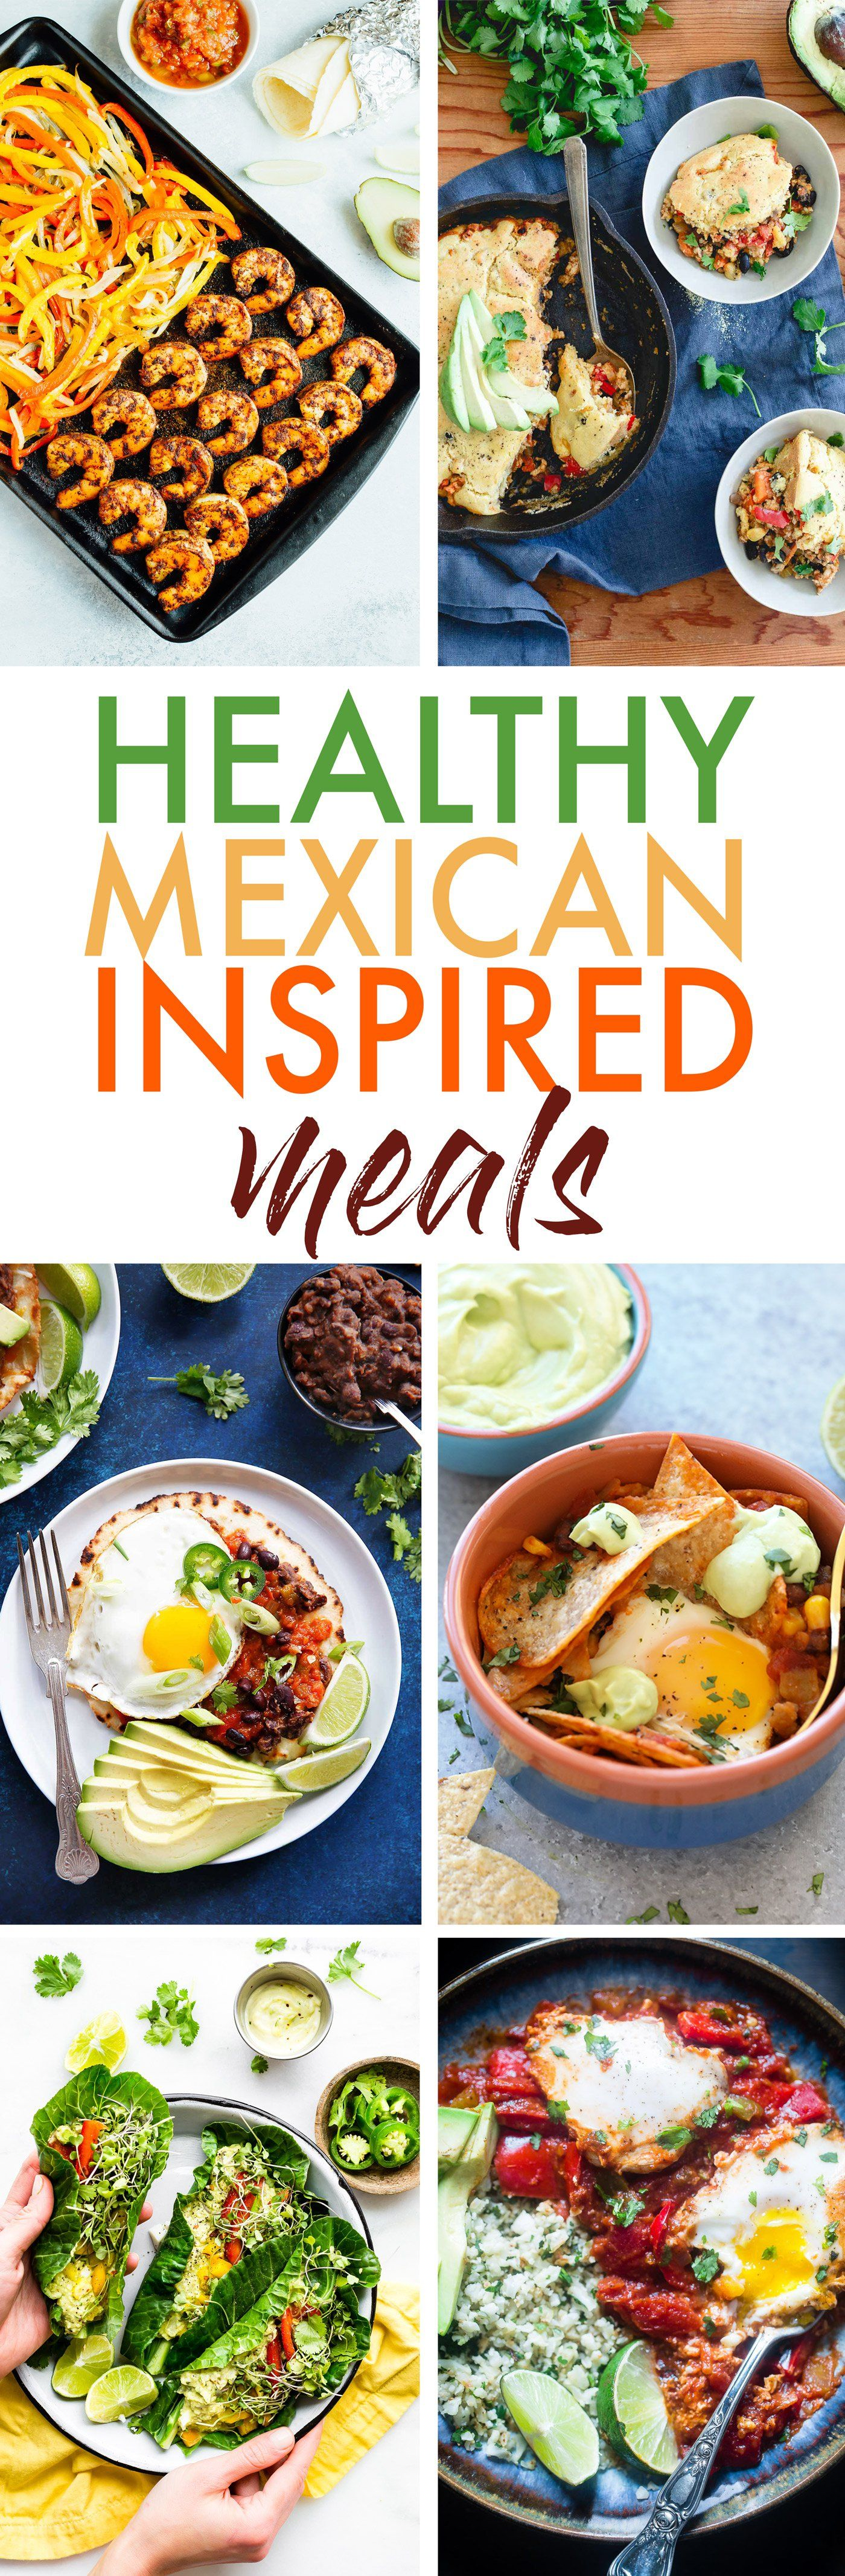 Healthy Mexican Inspired Meals! Gluten Free, Paleo Options